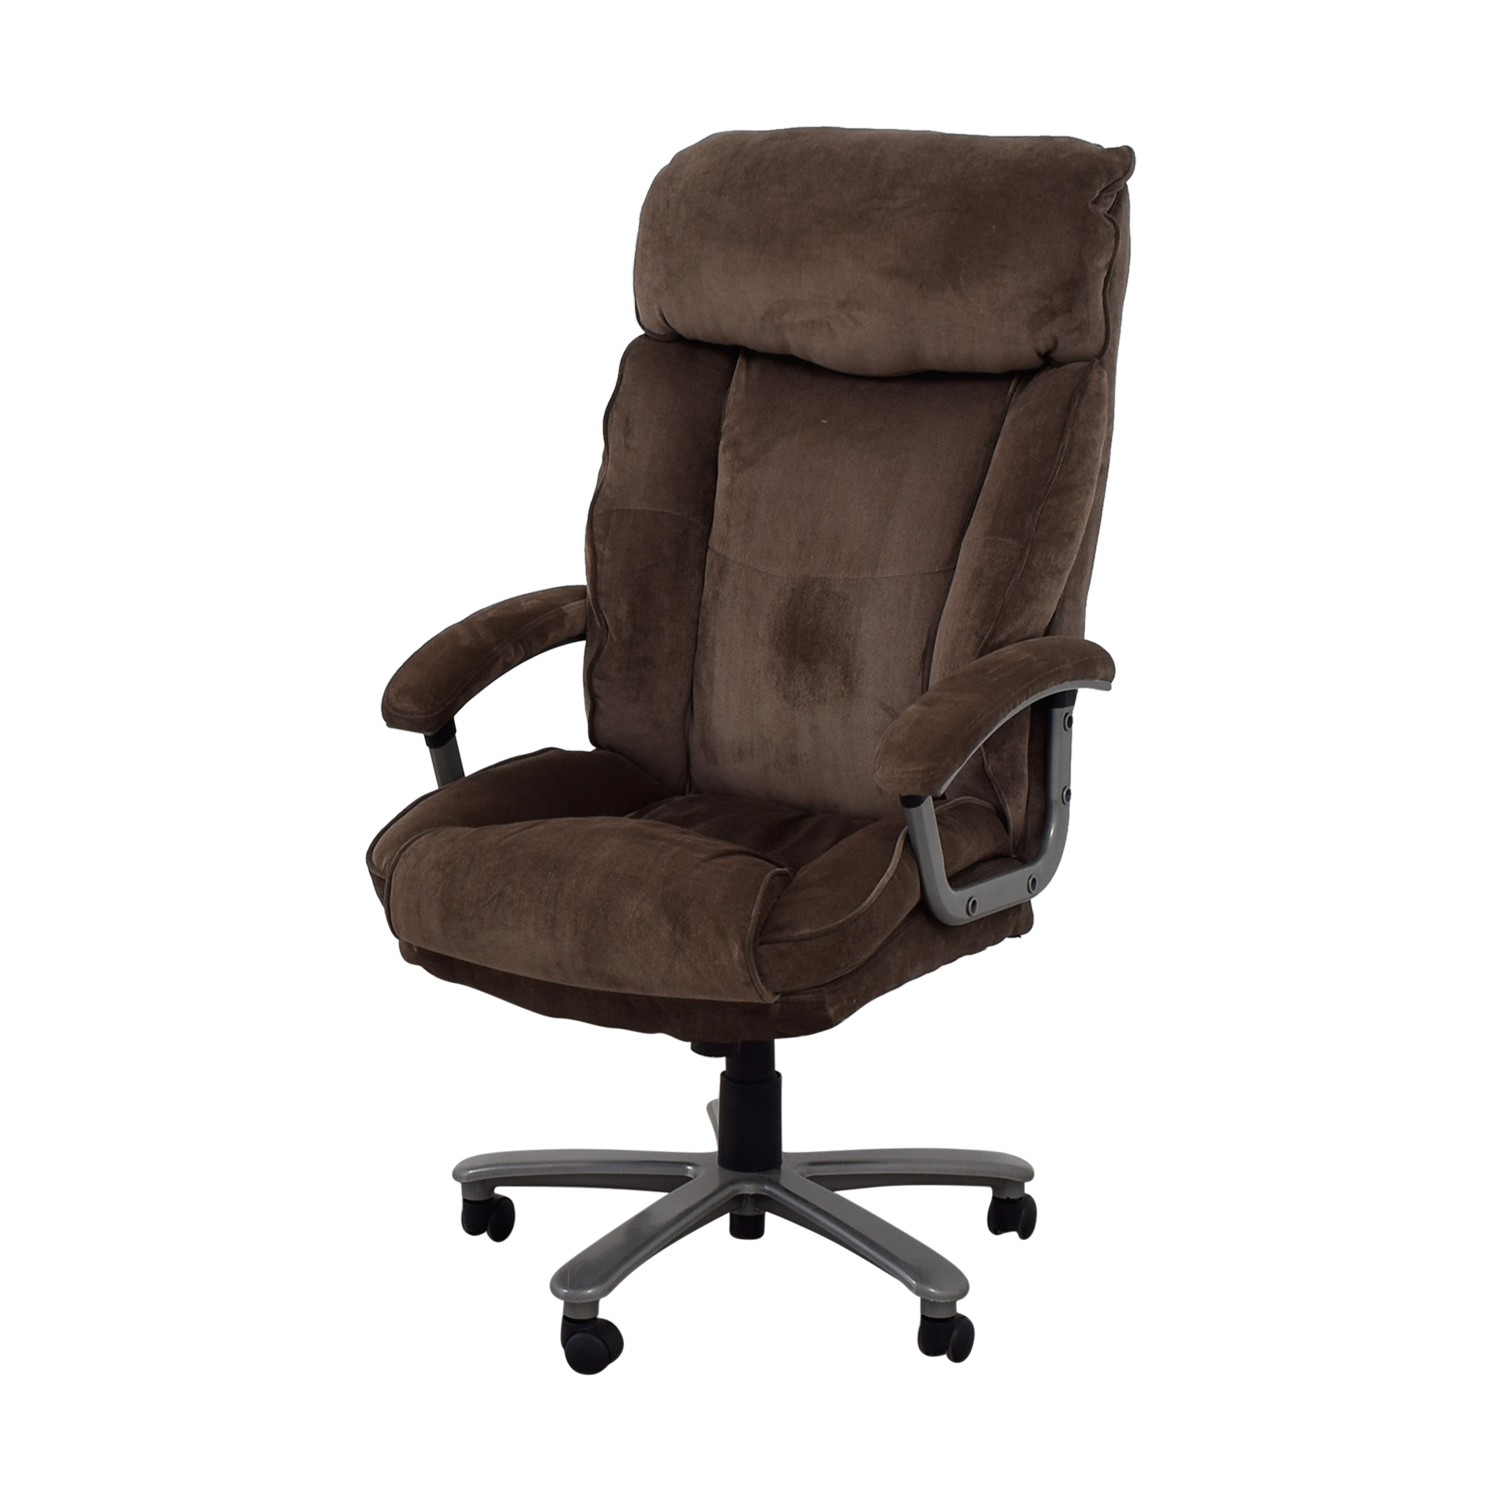 78 OFF  Office Depot Office Depot Grey Office Chair  Chairs